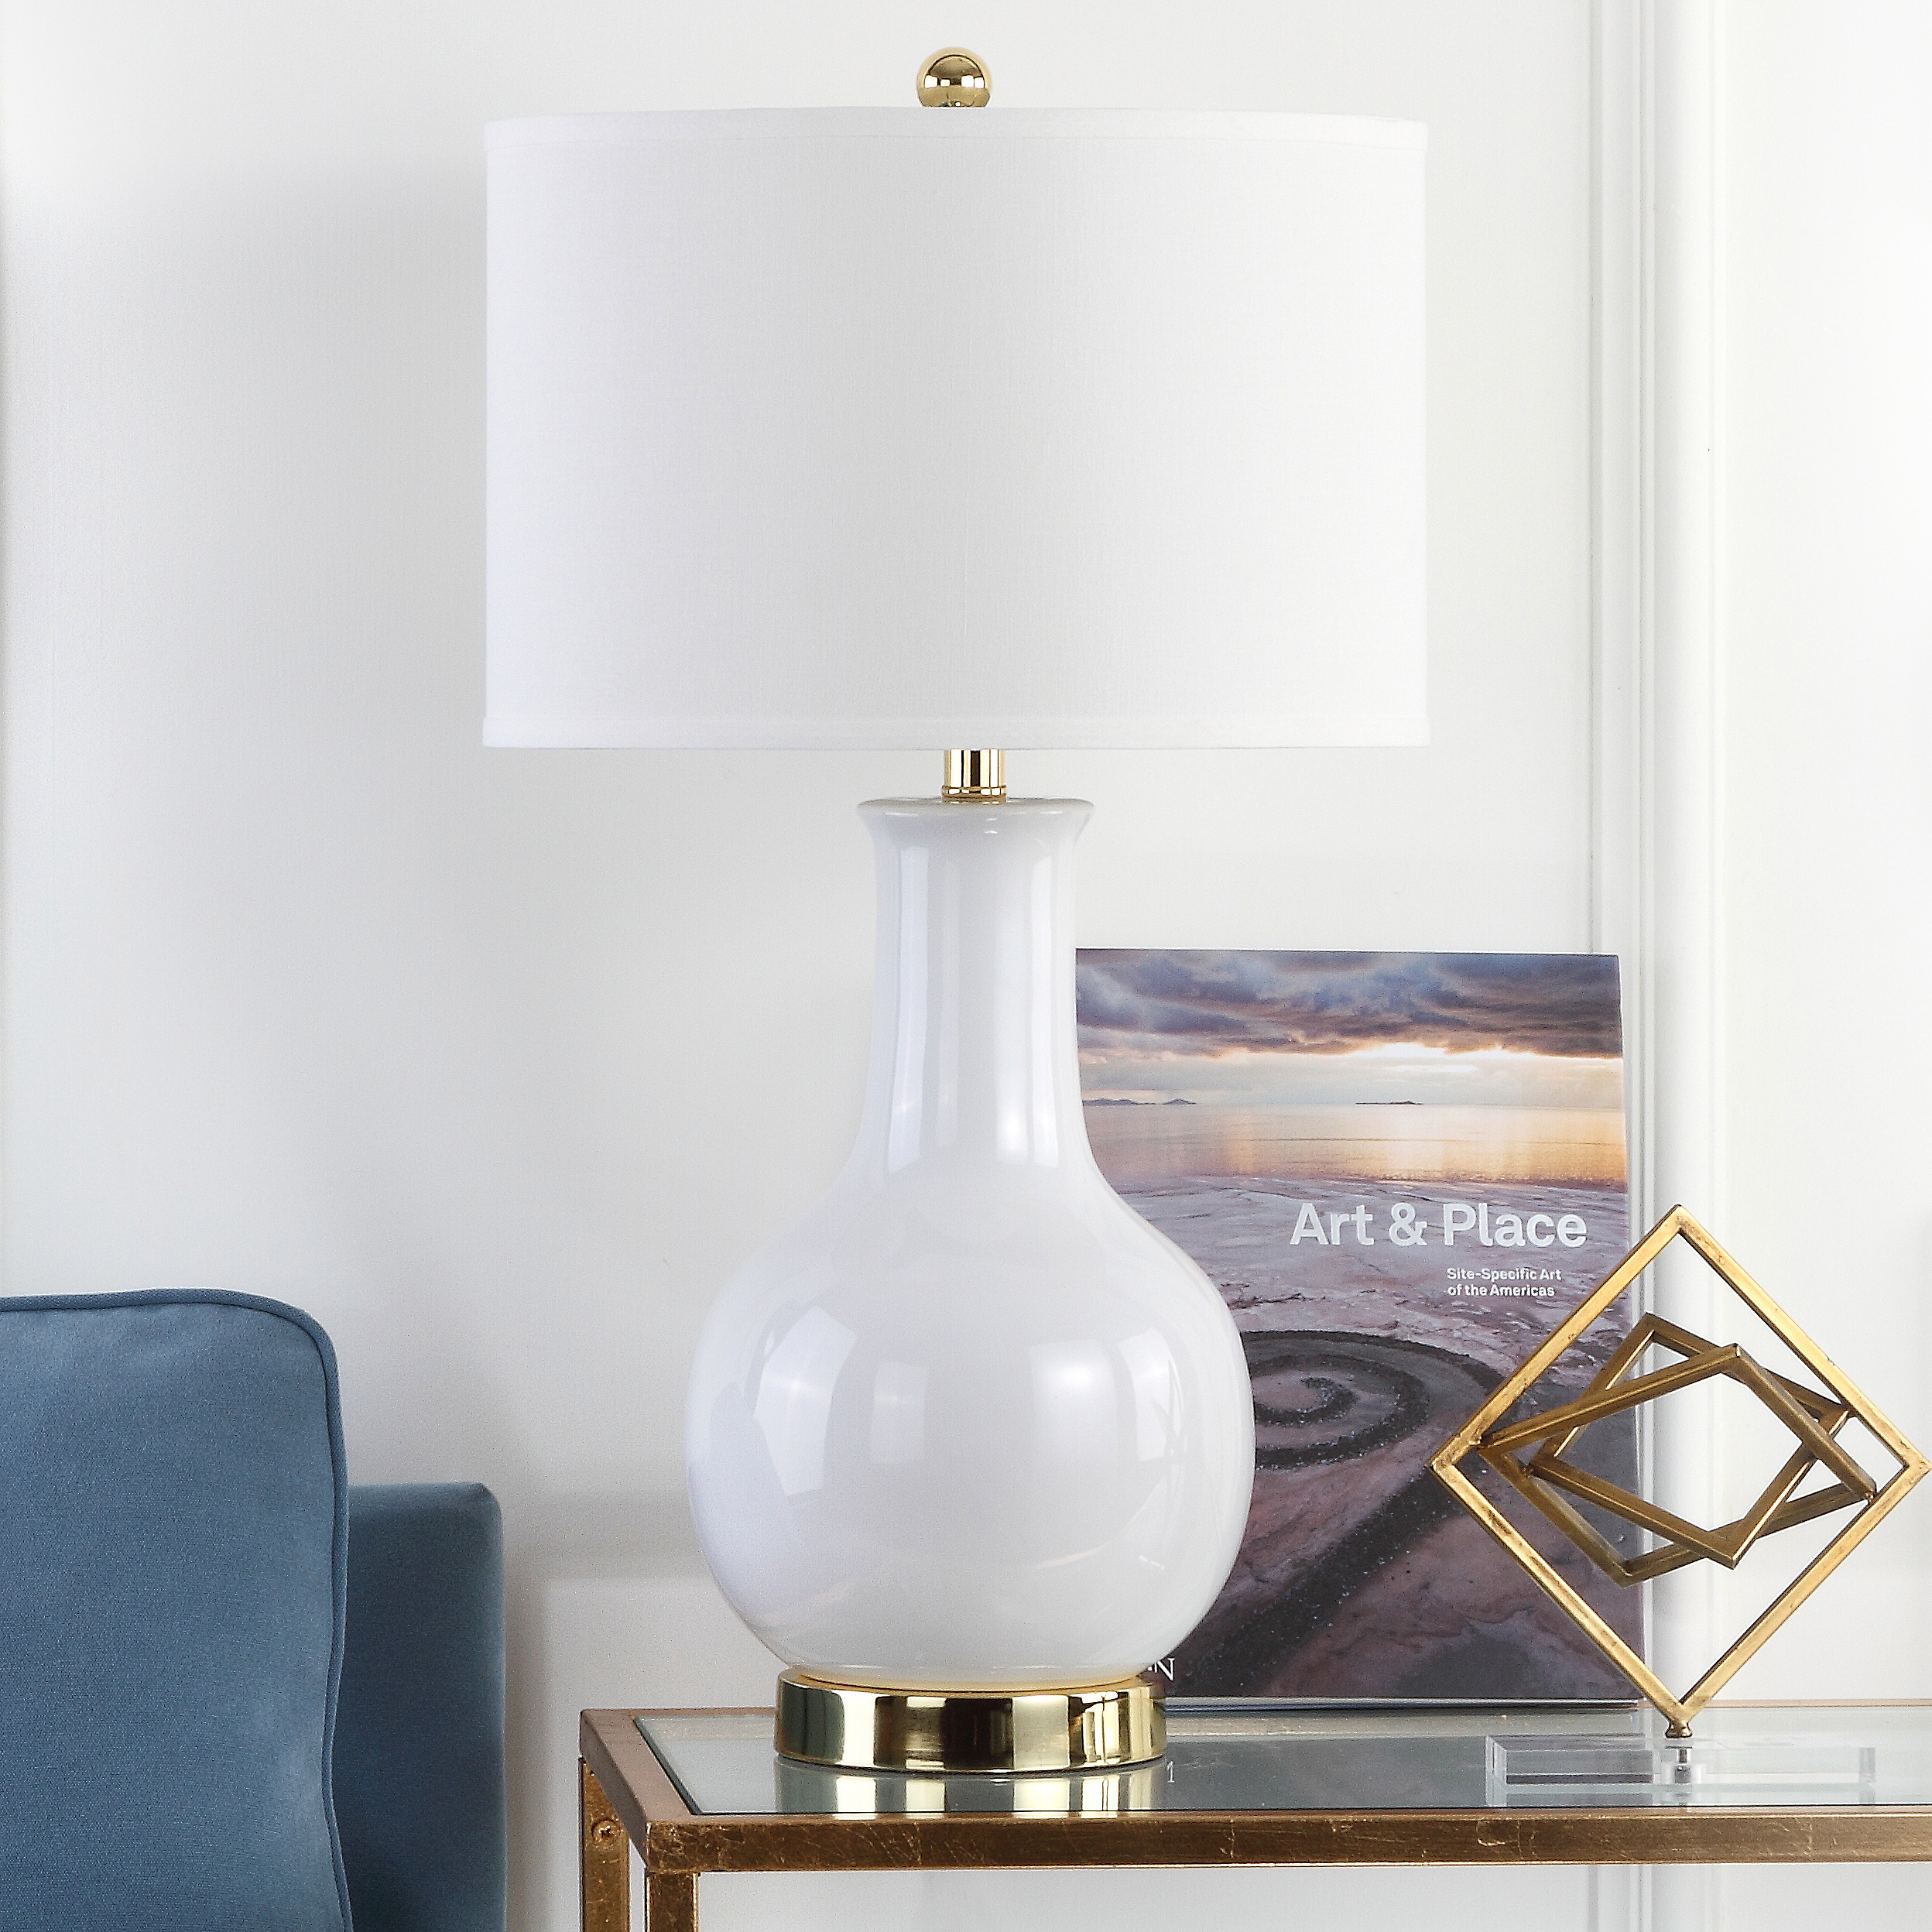 Safavieh Ceramic Paris Solid Glam Lamp with CFL Bulb